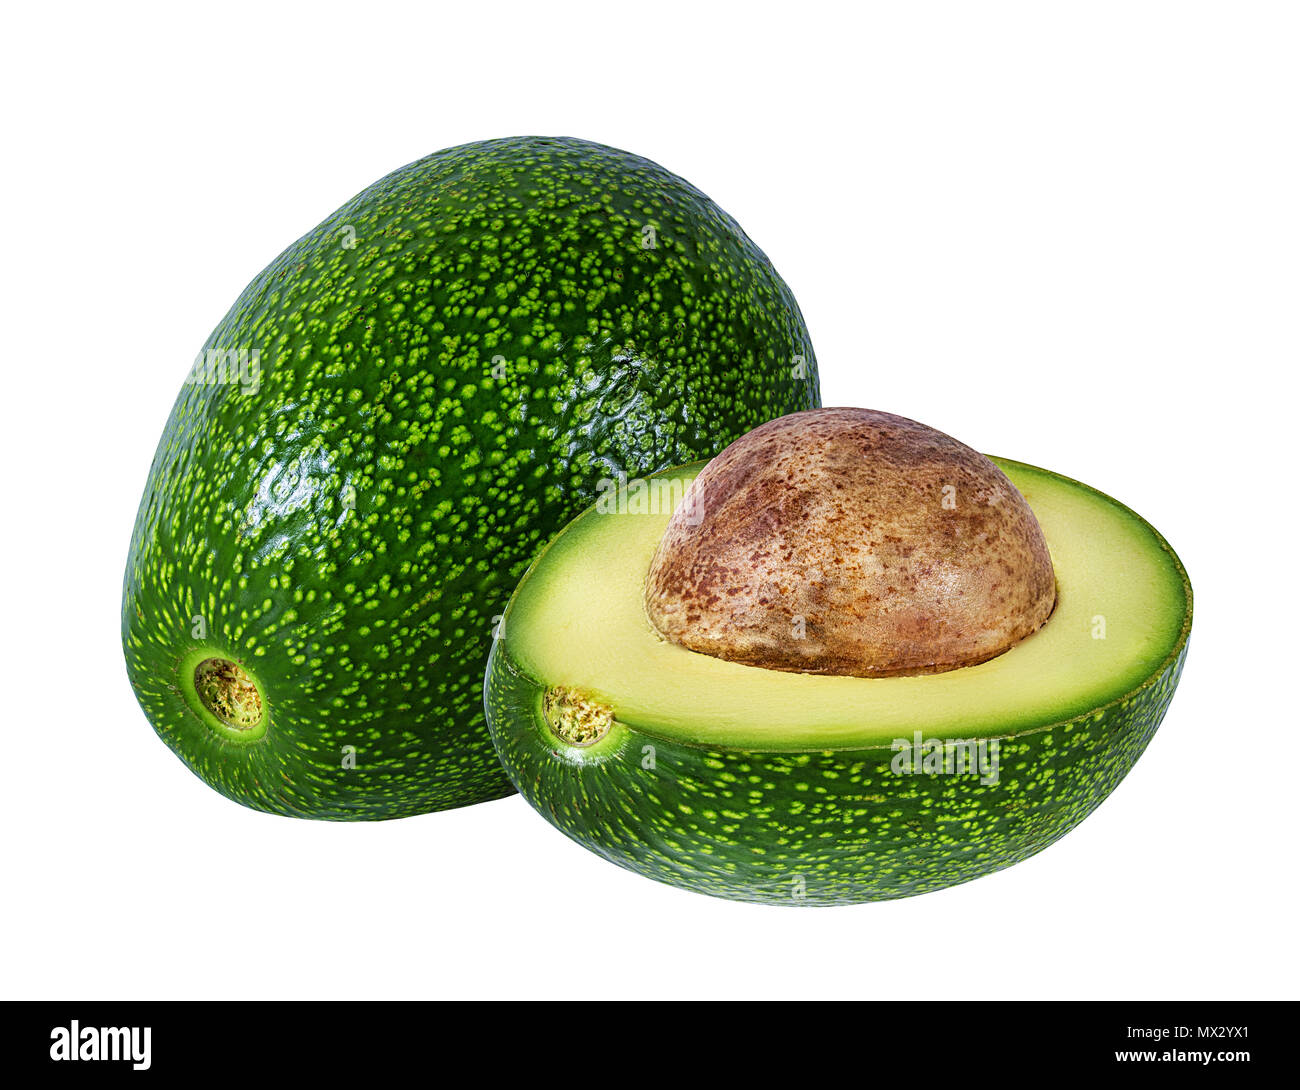 Fresh avocado fruits isolated on white background with clipping path - Stock Image